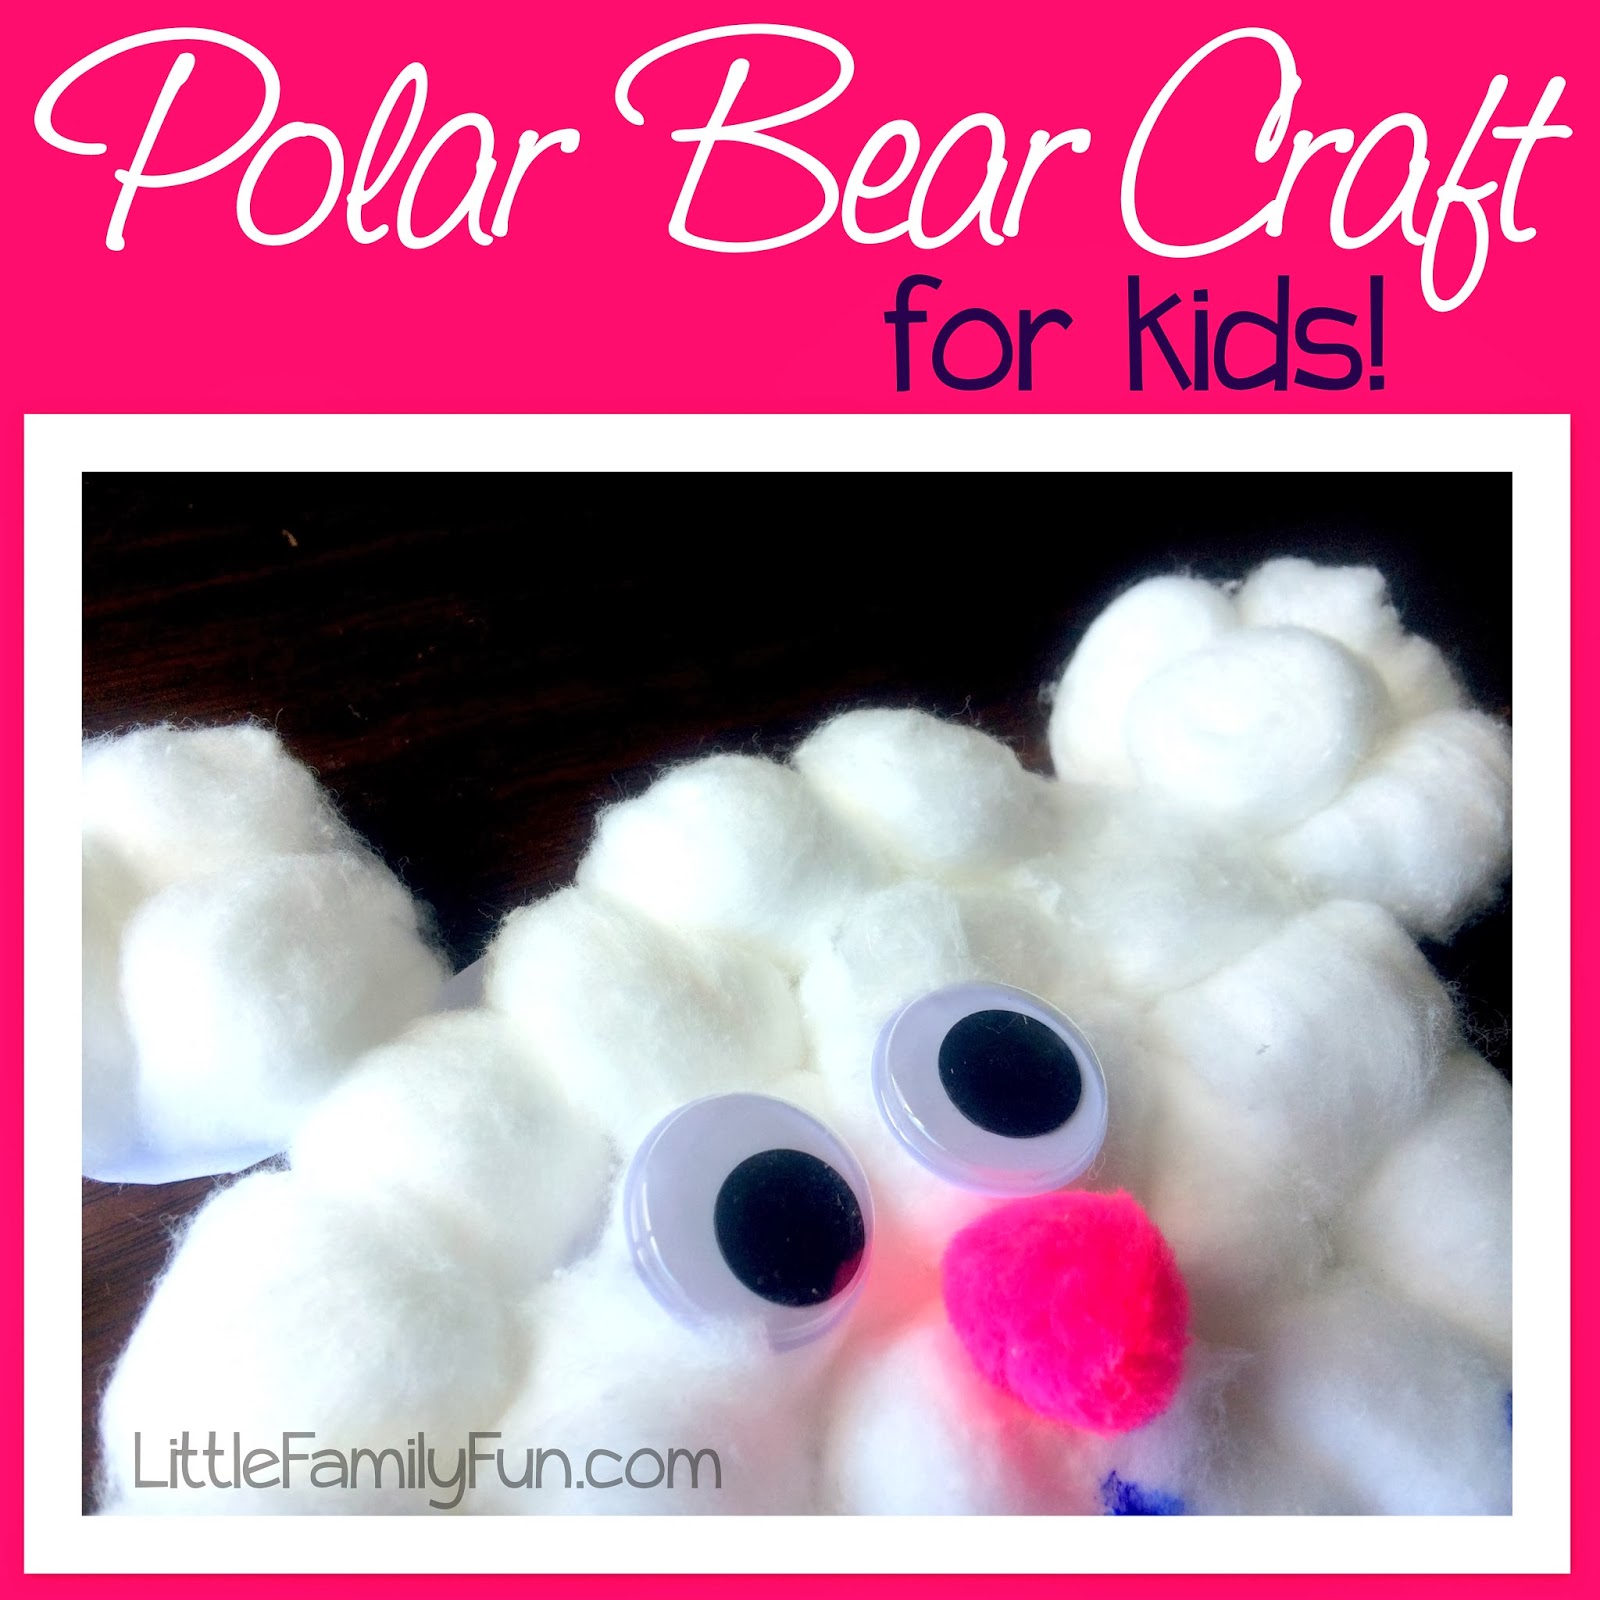 http://www.littlefamilyfun.com/2014/01/polar-bear-craft.html